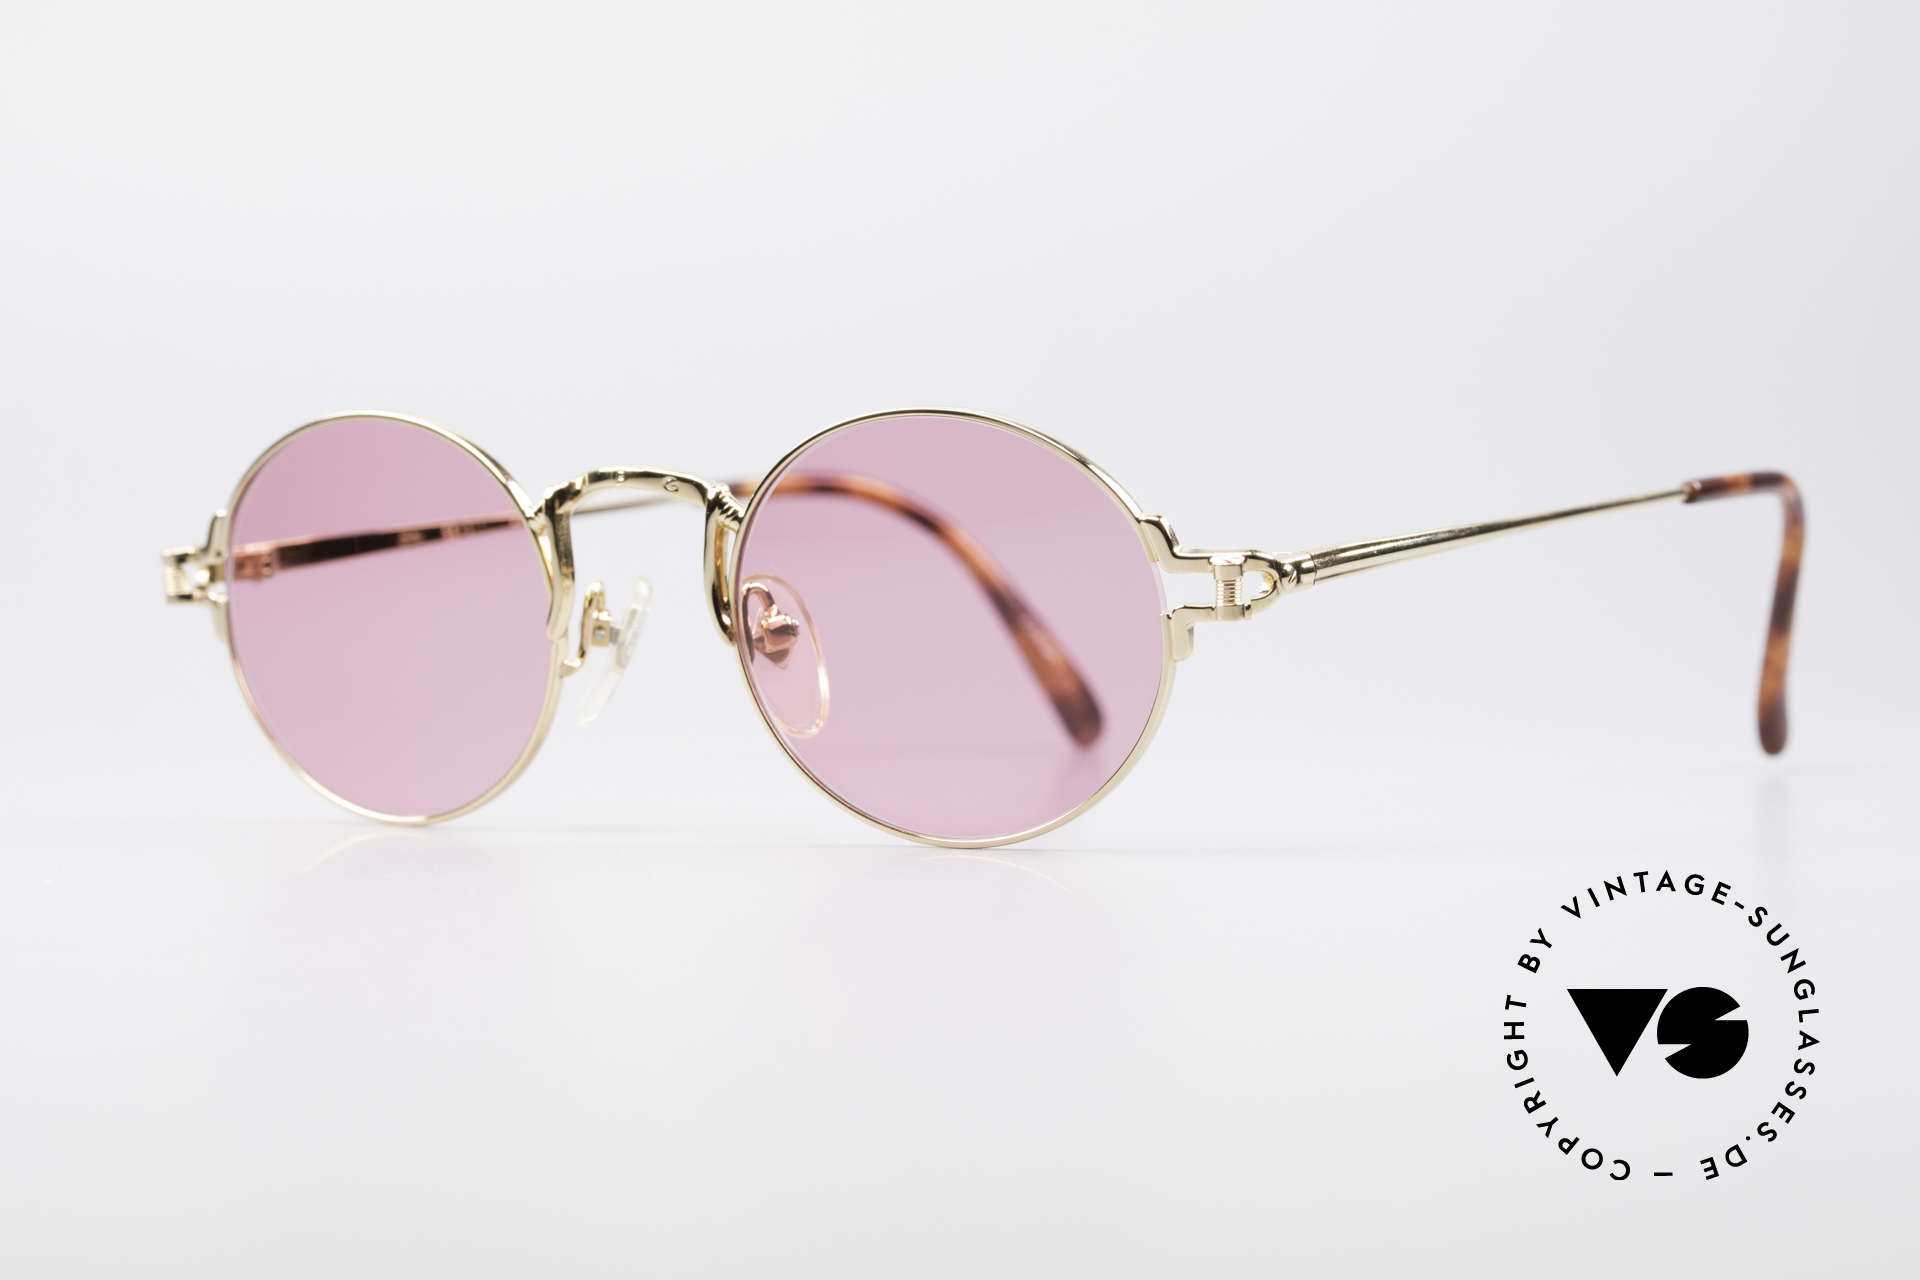 Jean Paul Gaultier 55-3171 Small Round Sunglasses, but with some fancy frame details (distinctive J.P.G), Made for Men and Women